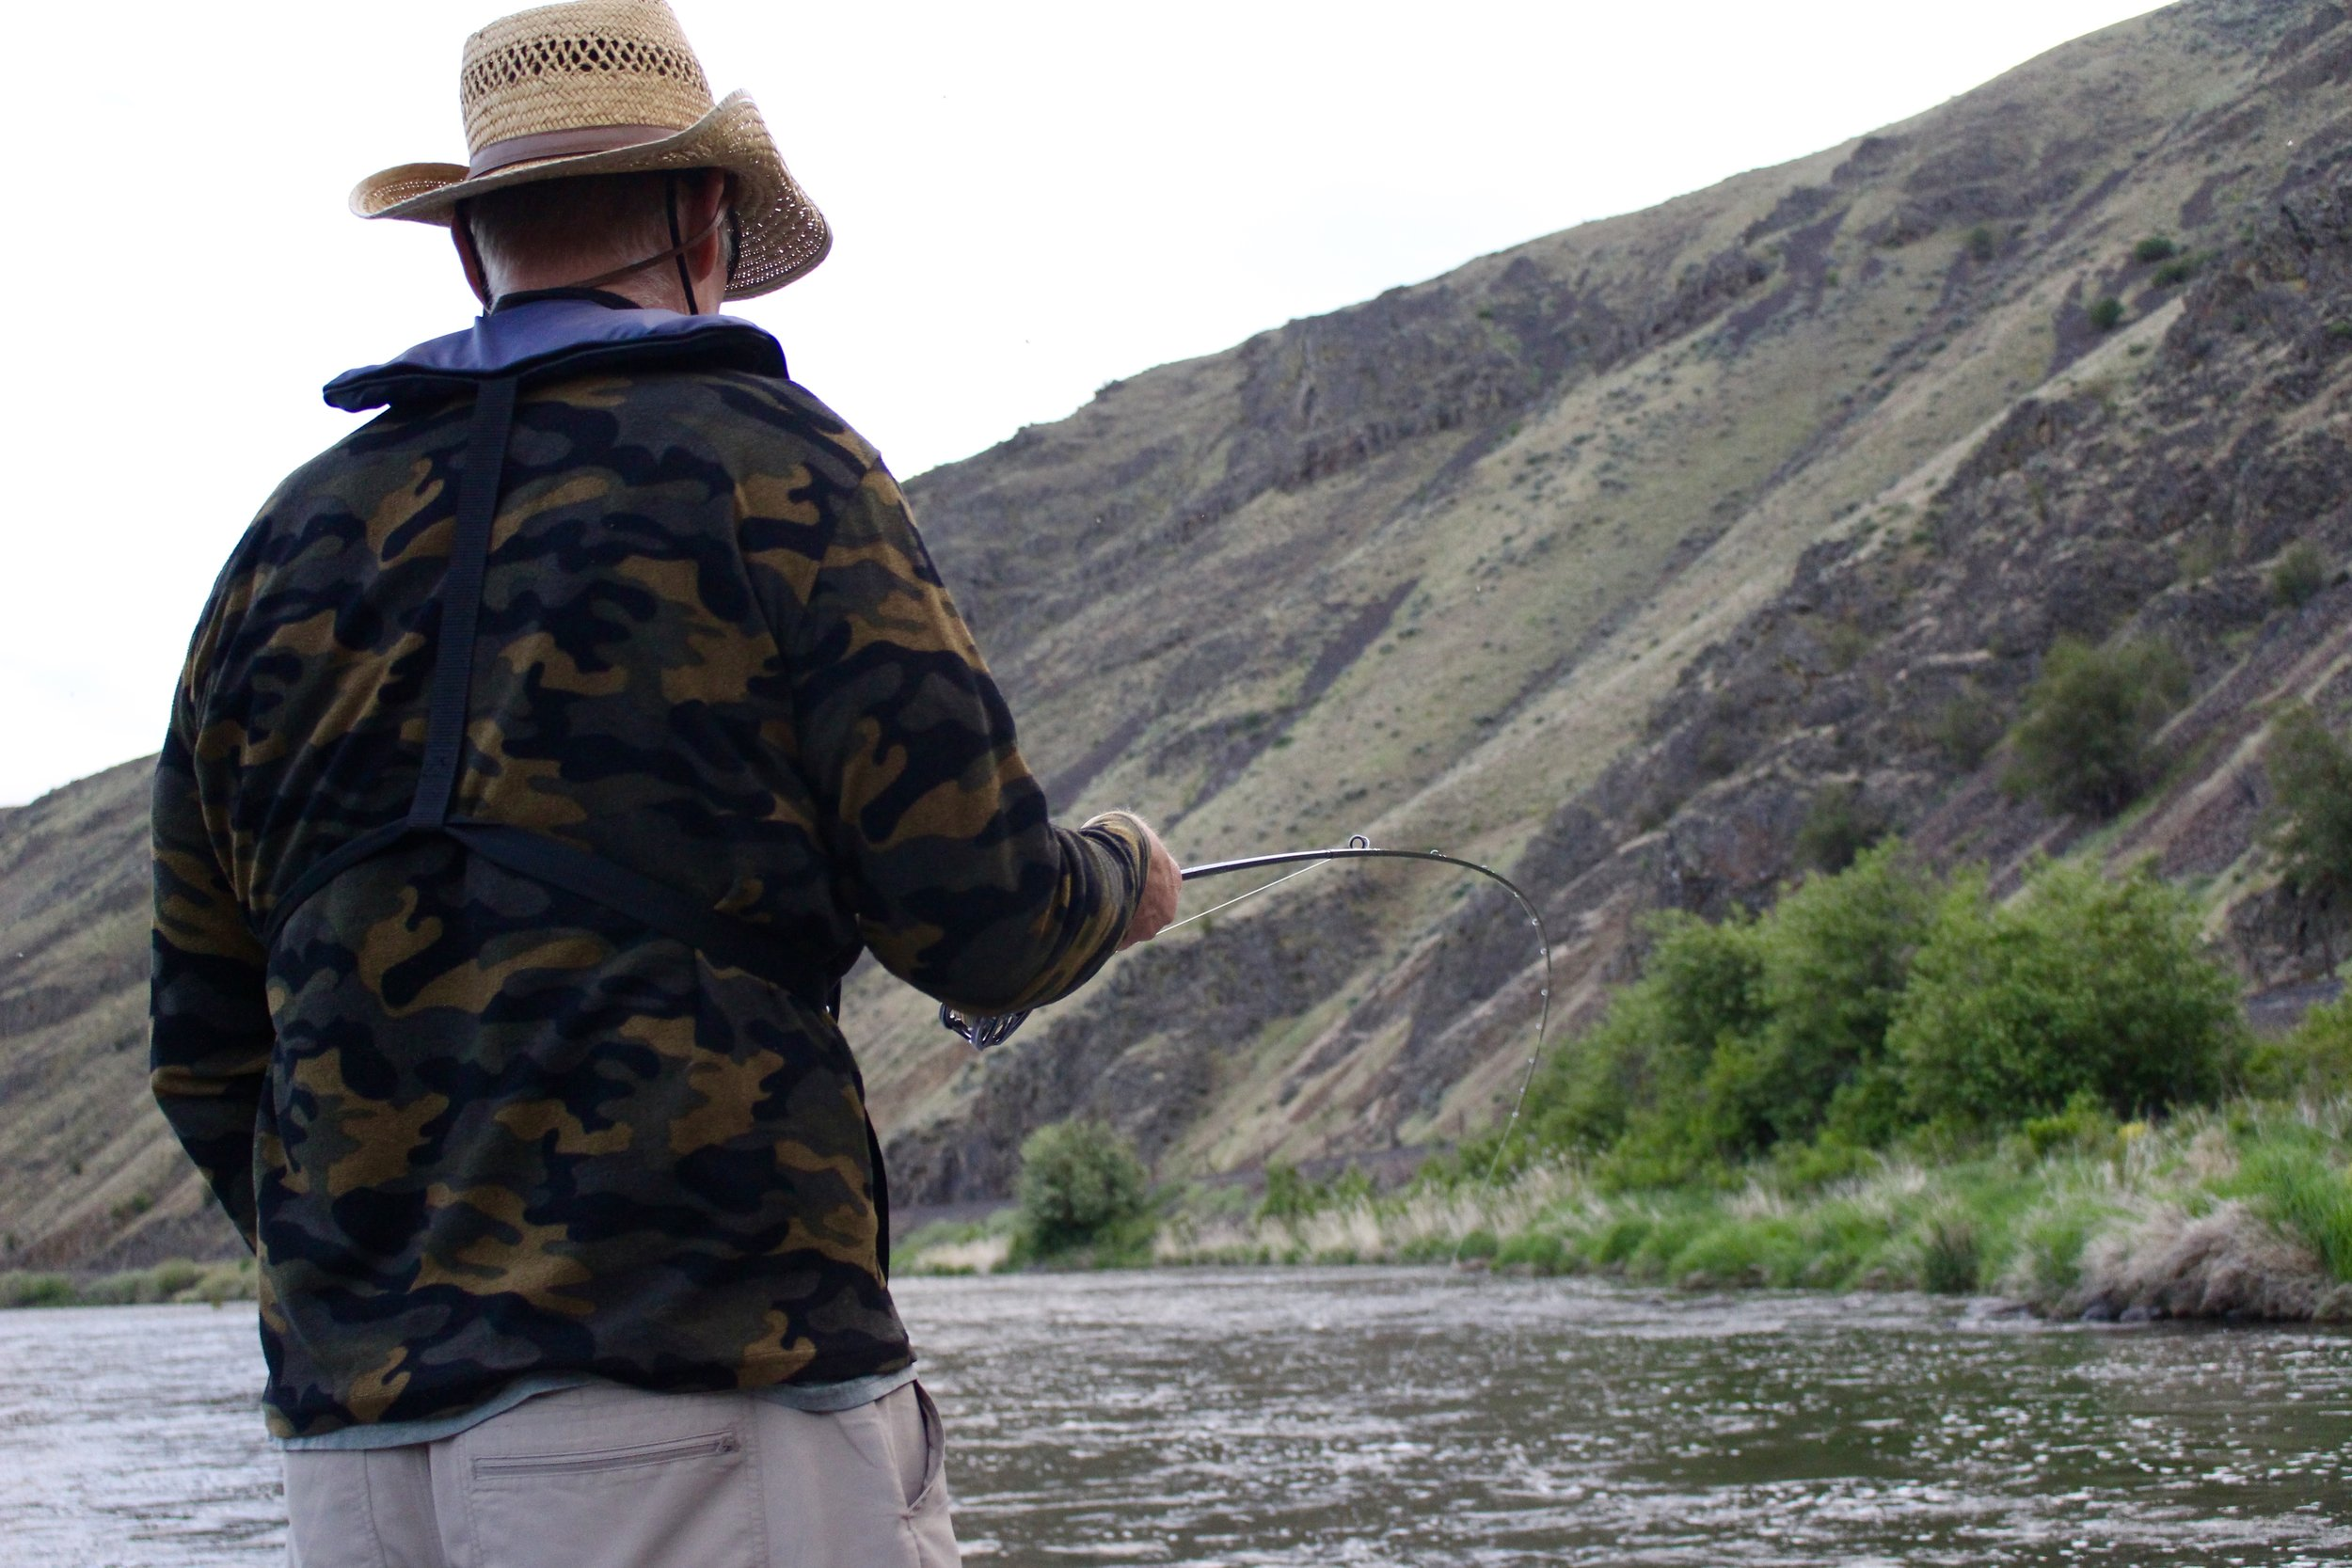 Hooked up on a Yakima River rainbow trout during the caddisfly hatch